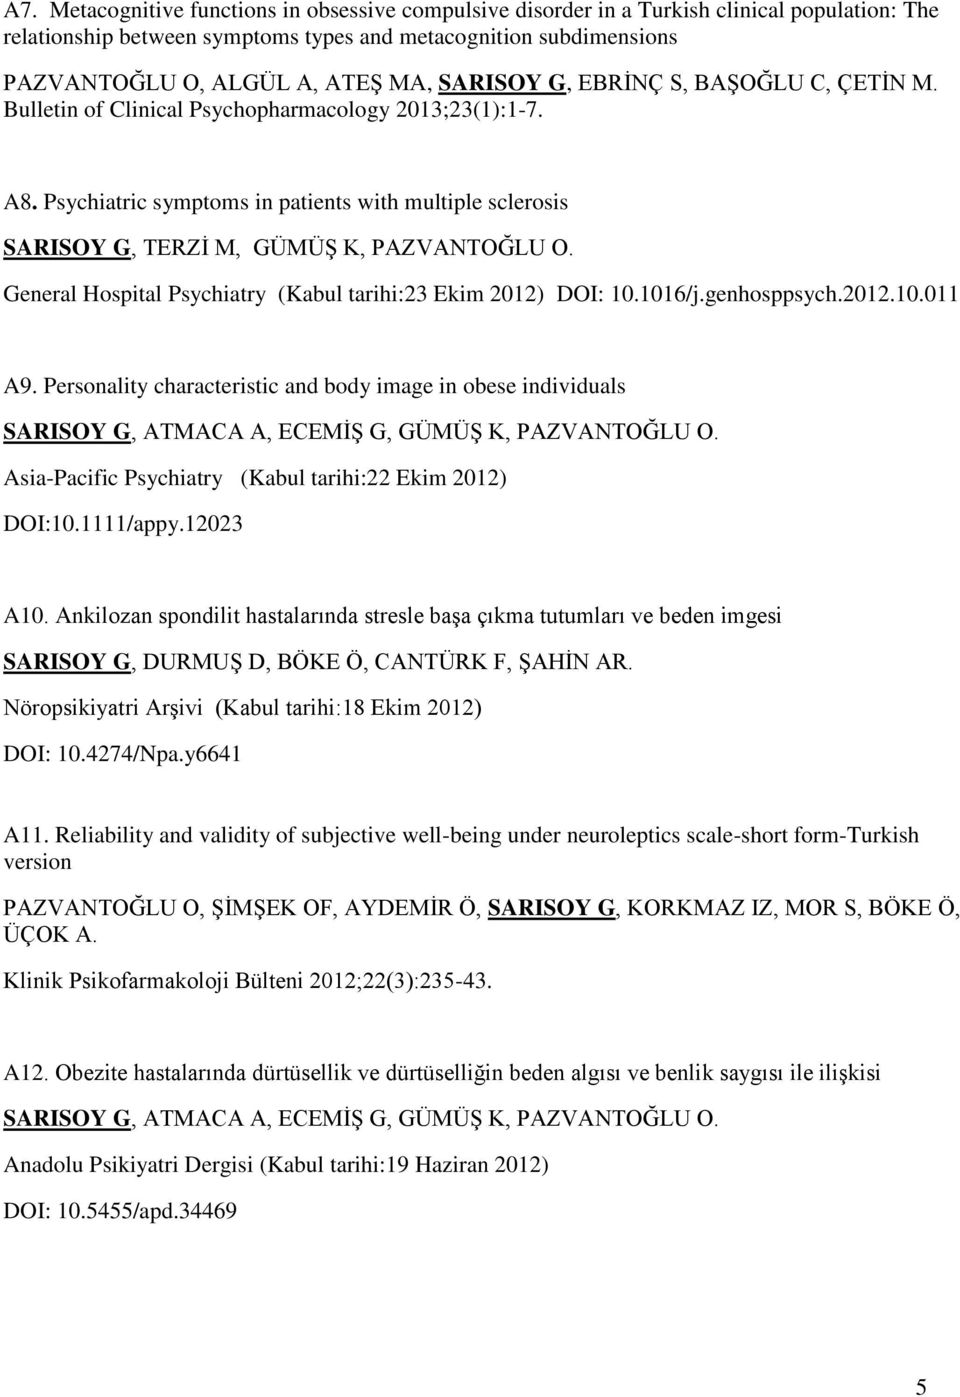 Psychiatric symptoms in patients with multiple sclerosis SARISOY G, TERZİ M, GÜMÜŞ K, PAZVANTOĞLU O. General Hospital Psychiatry (Kabul tarihi:23 Ekim 2012) DOI: 10.1016/j.genhosppsych.2012.10.011 A9.